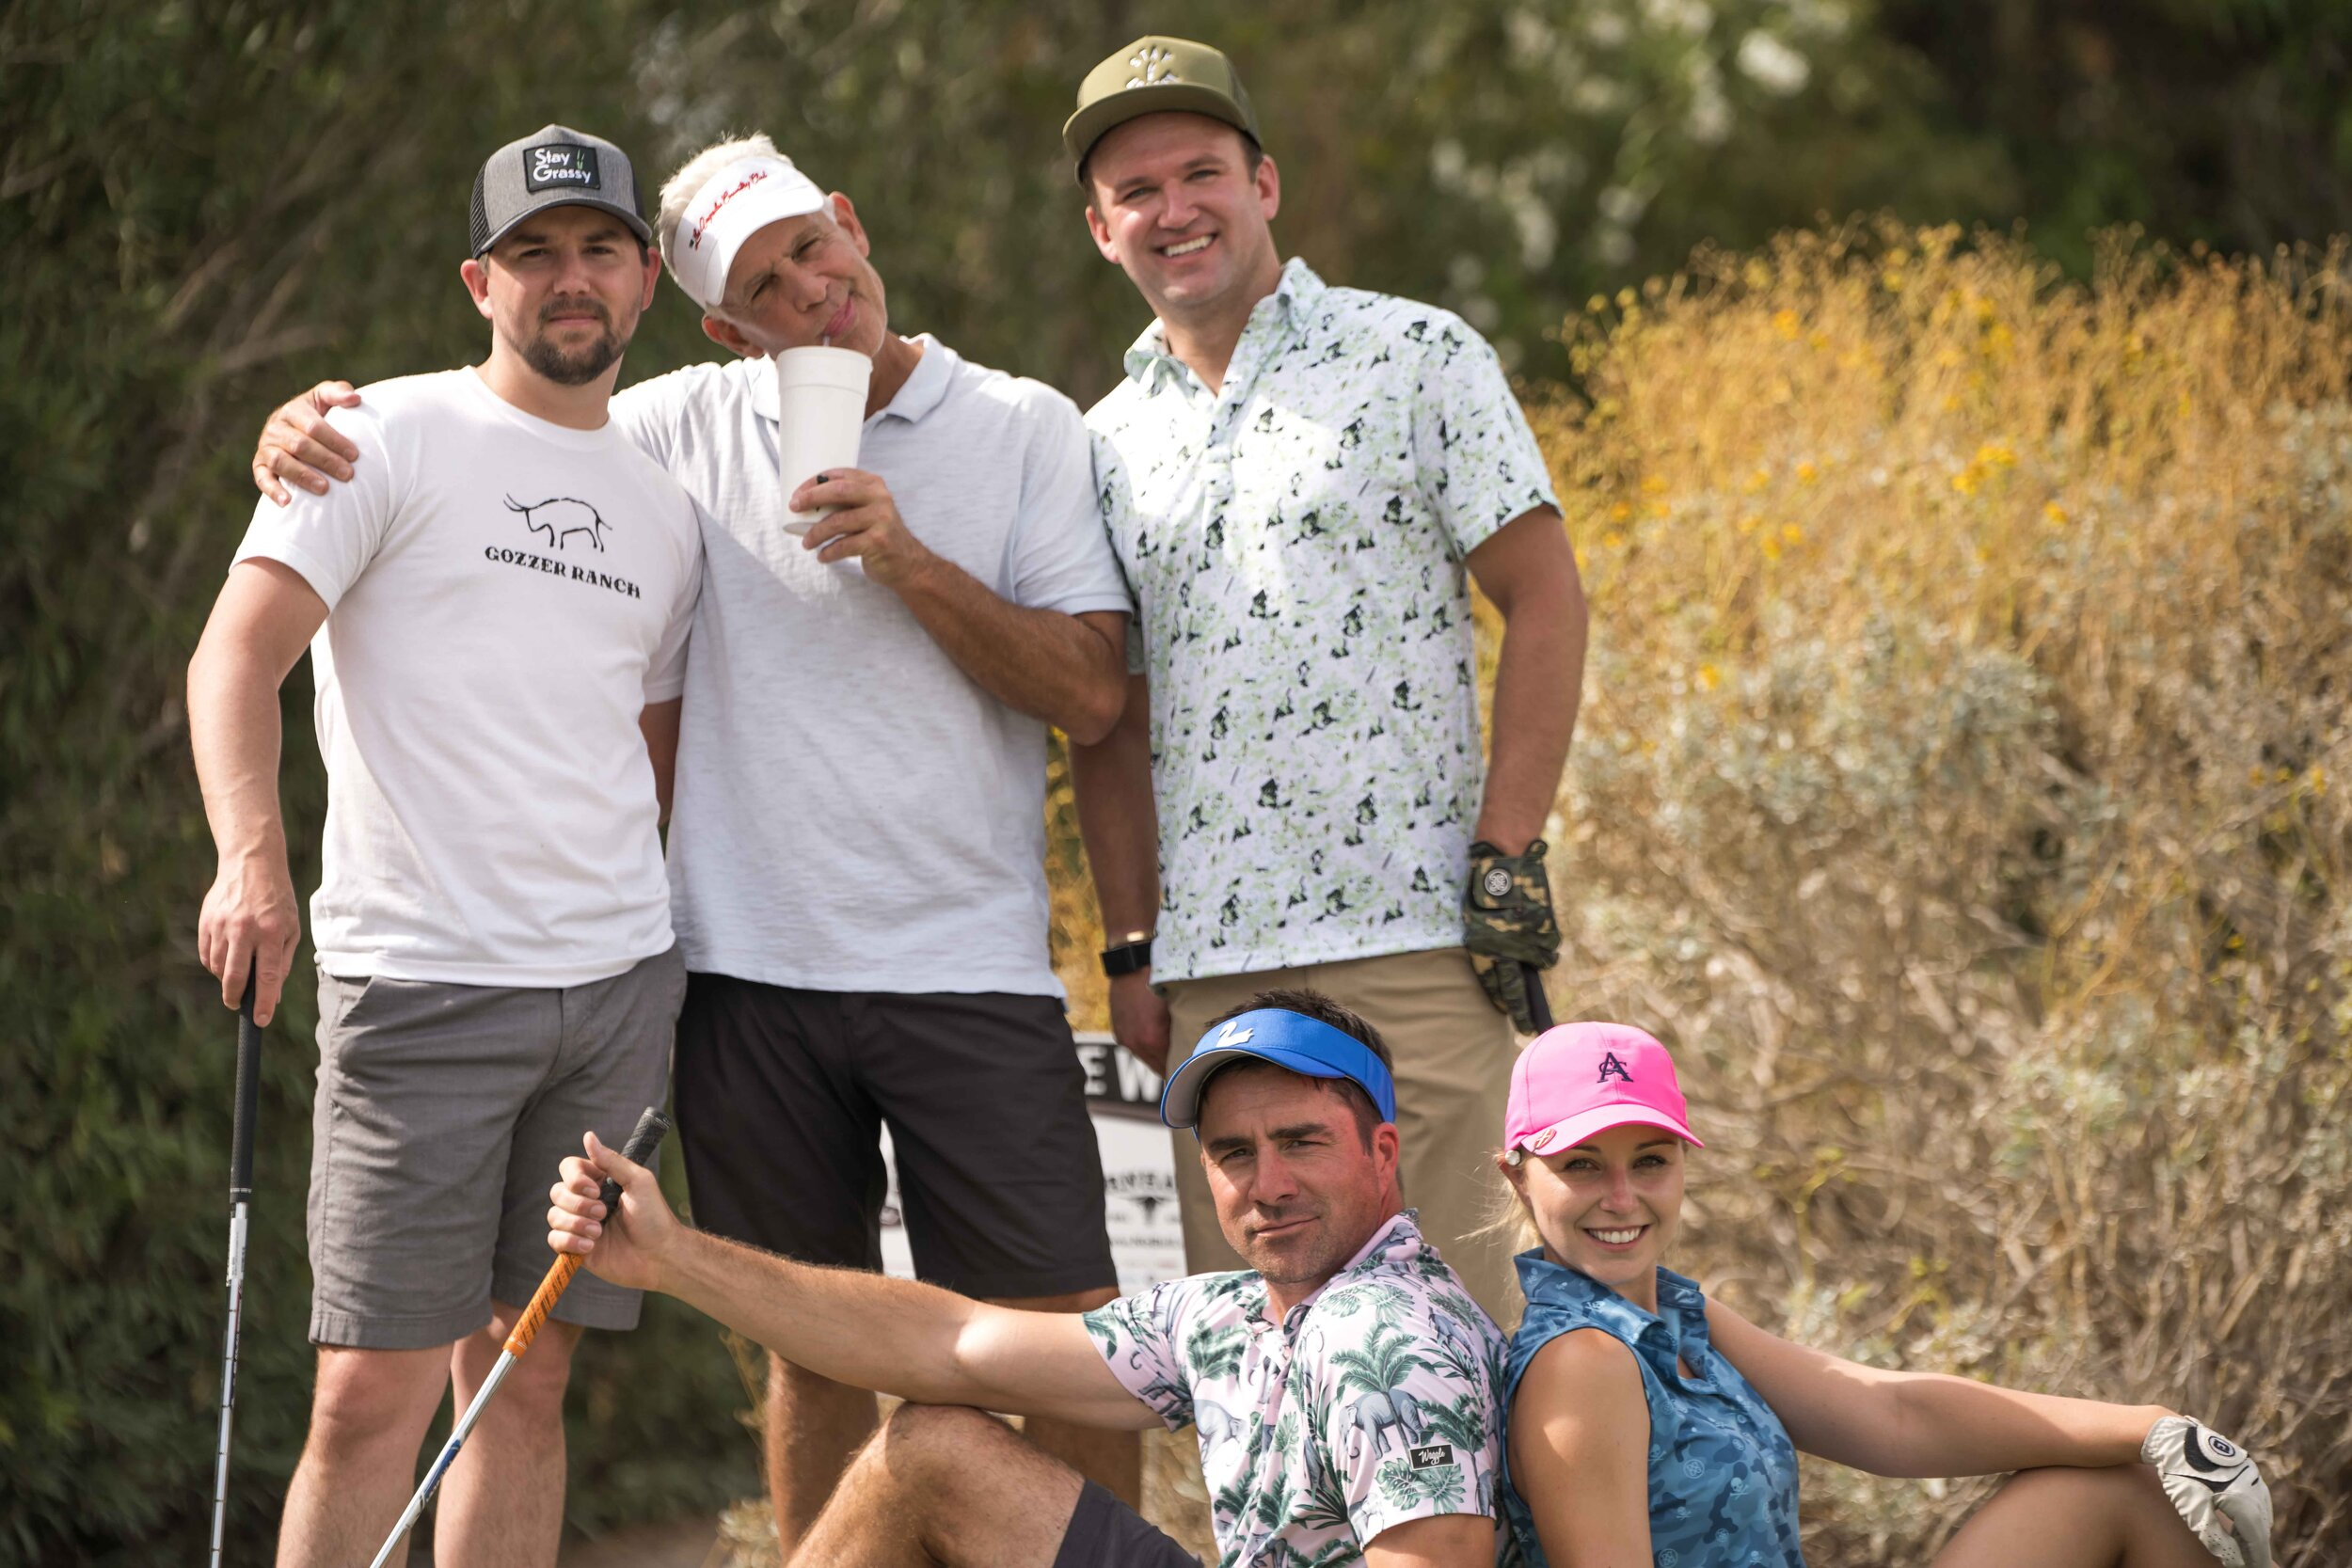 The crowd for the notorious 10 footer to make the cut consisted entirely of this rowdy crew.